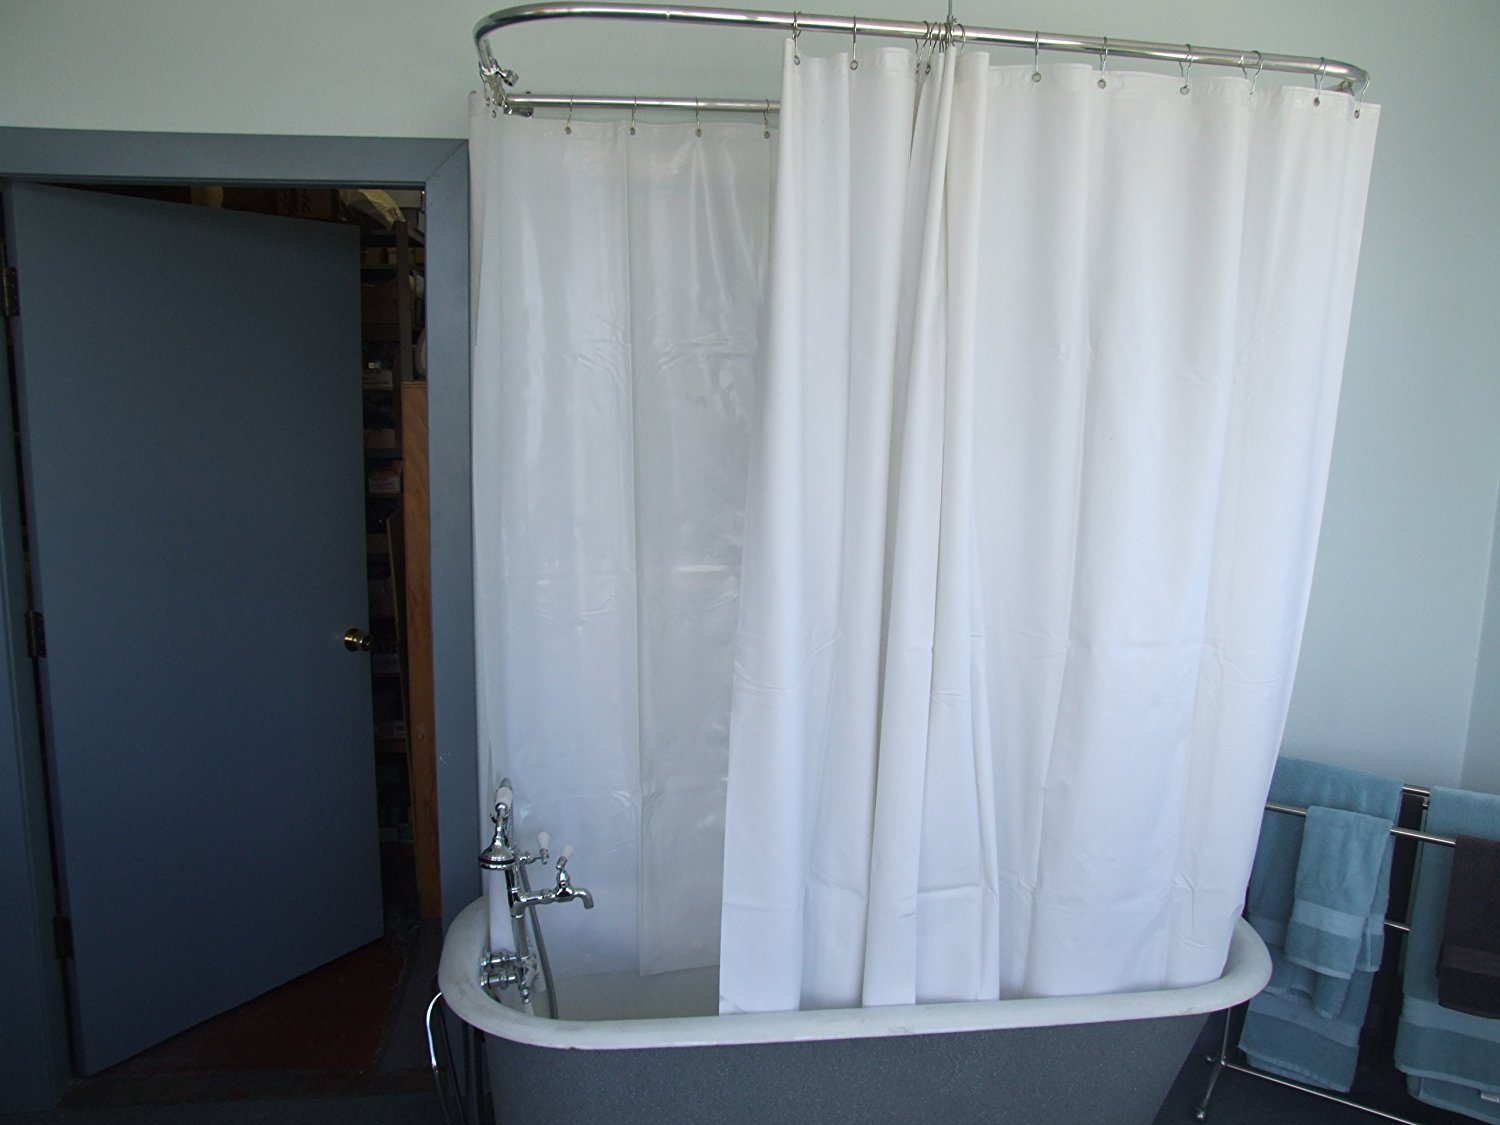 Clawfoot Shower Curtain | Shower Curtain Rods for Clawfoot Tubs | Clawfoot Tub Shower Curtain